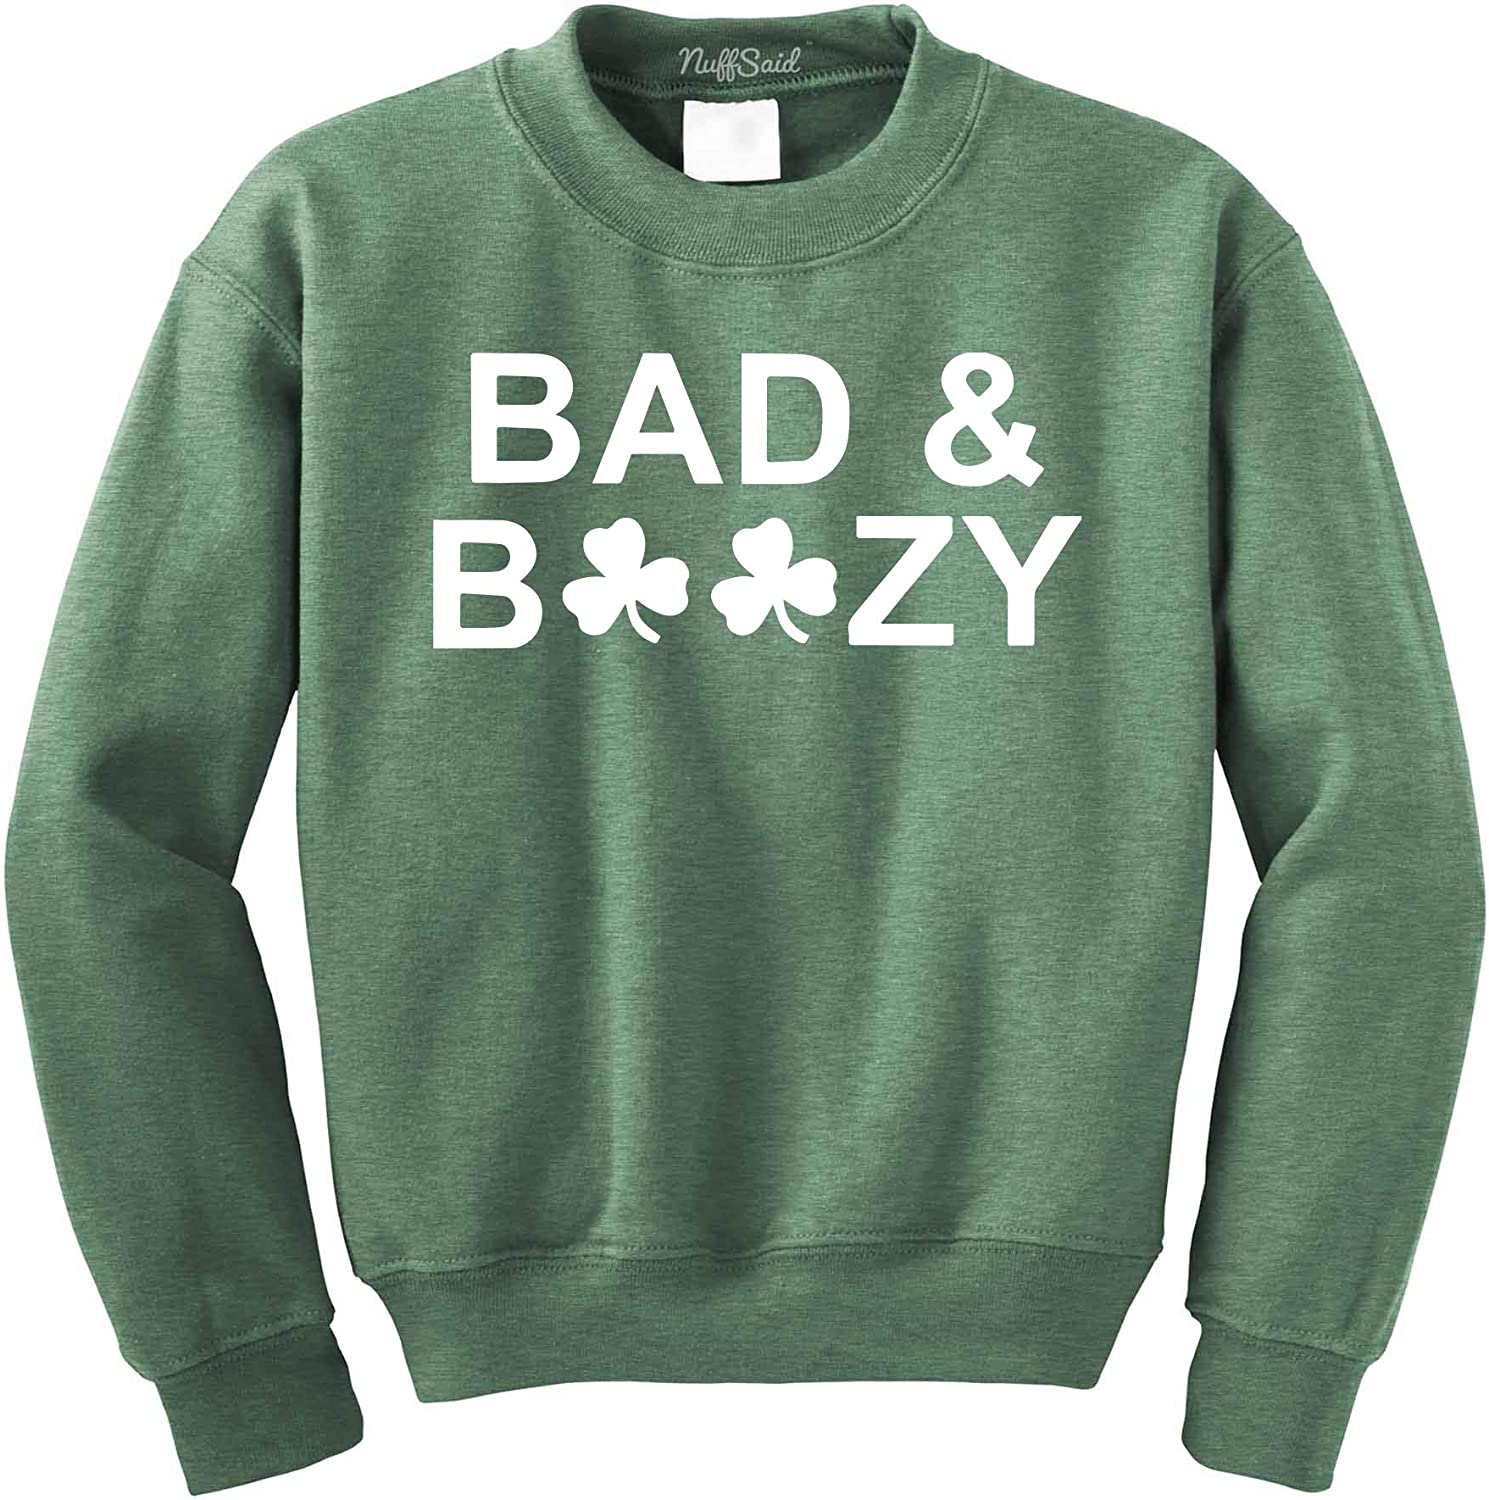 NuffSaid Bad & Boozy St. Patrick's Day Funny Drinking Crewneck Sweatshirt - Unisex Paddy's Crew